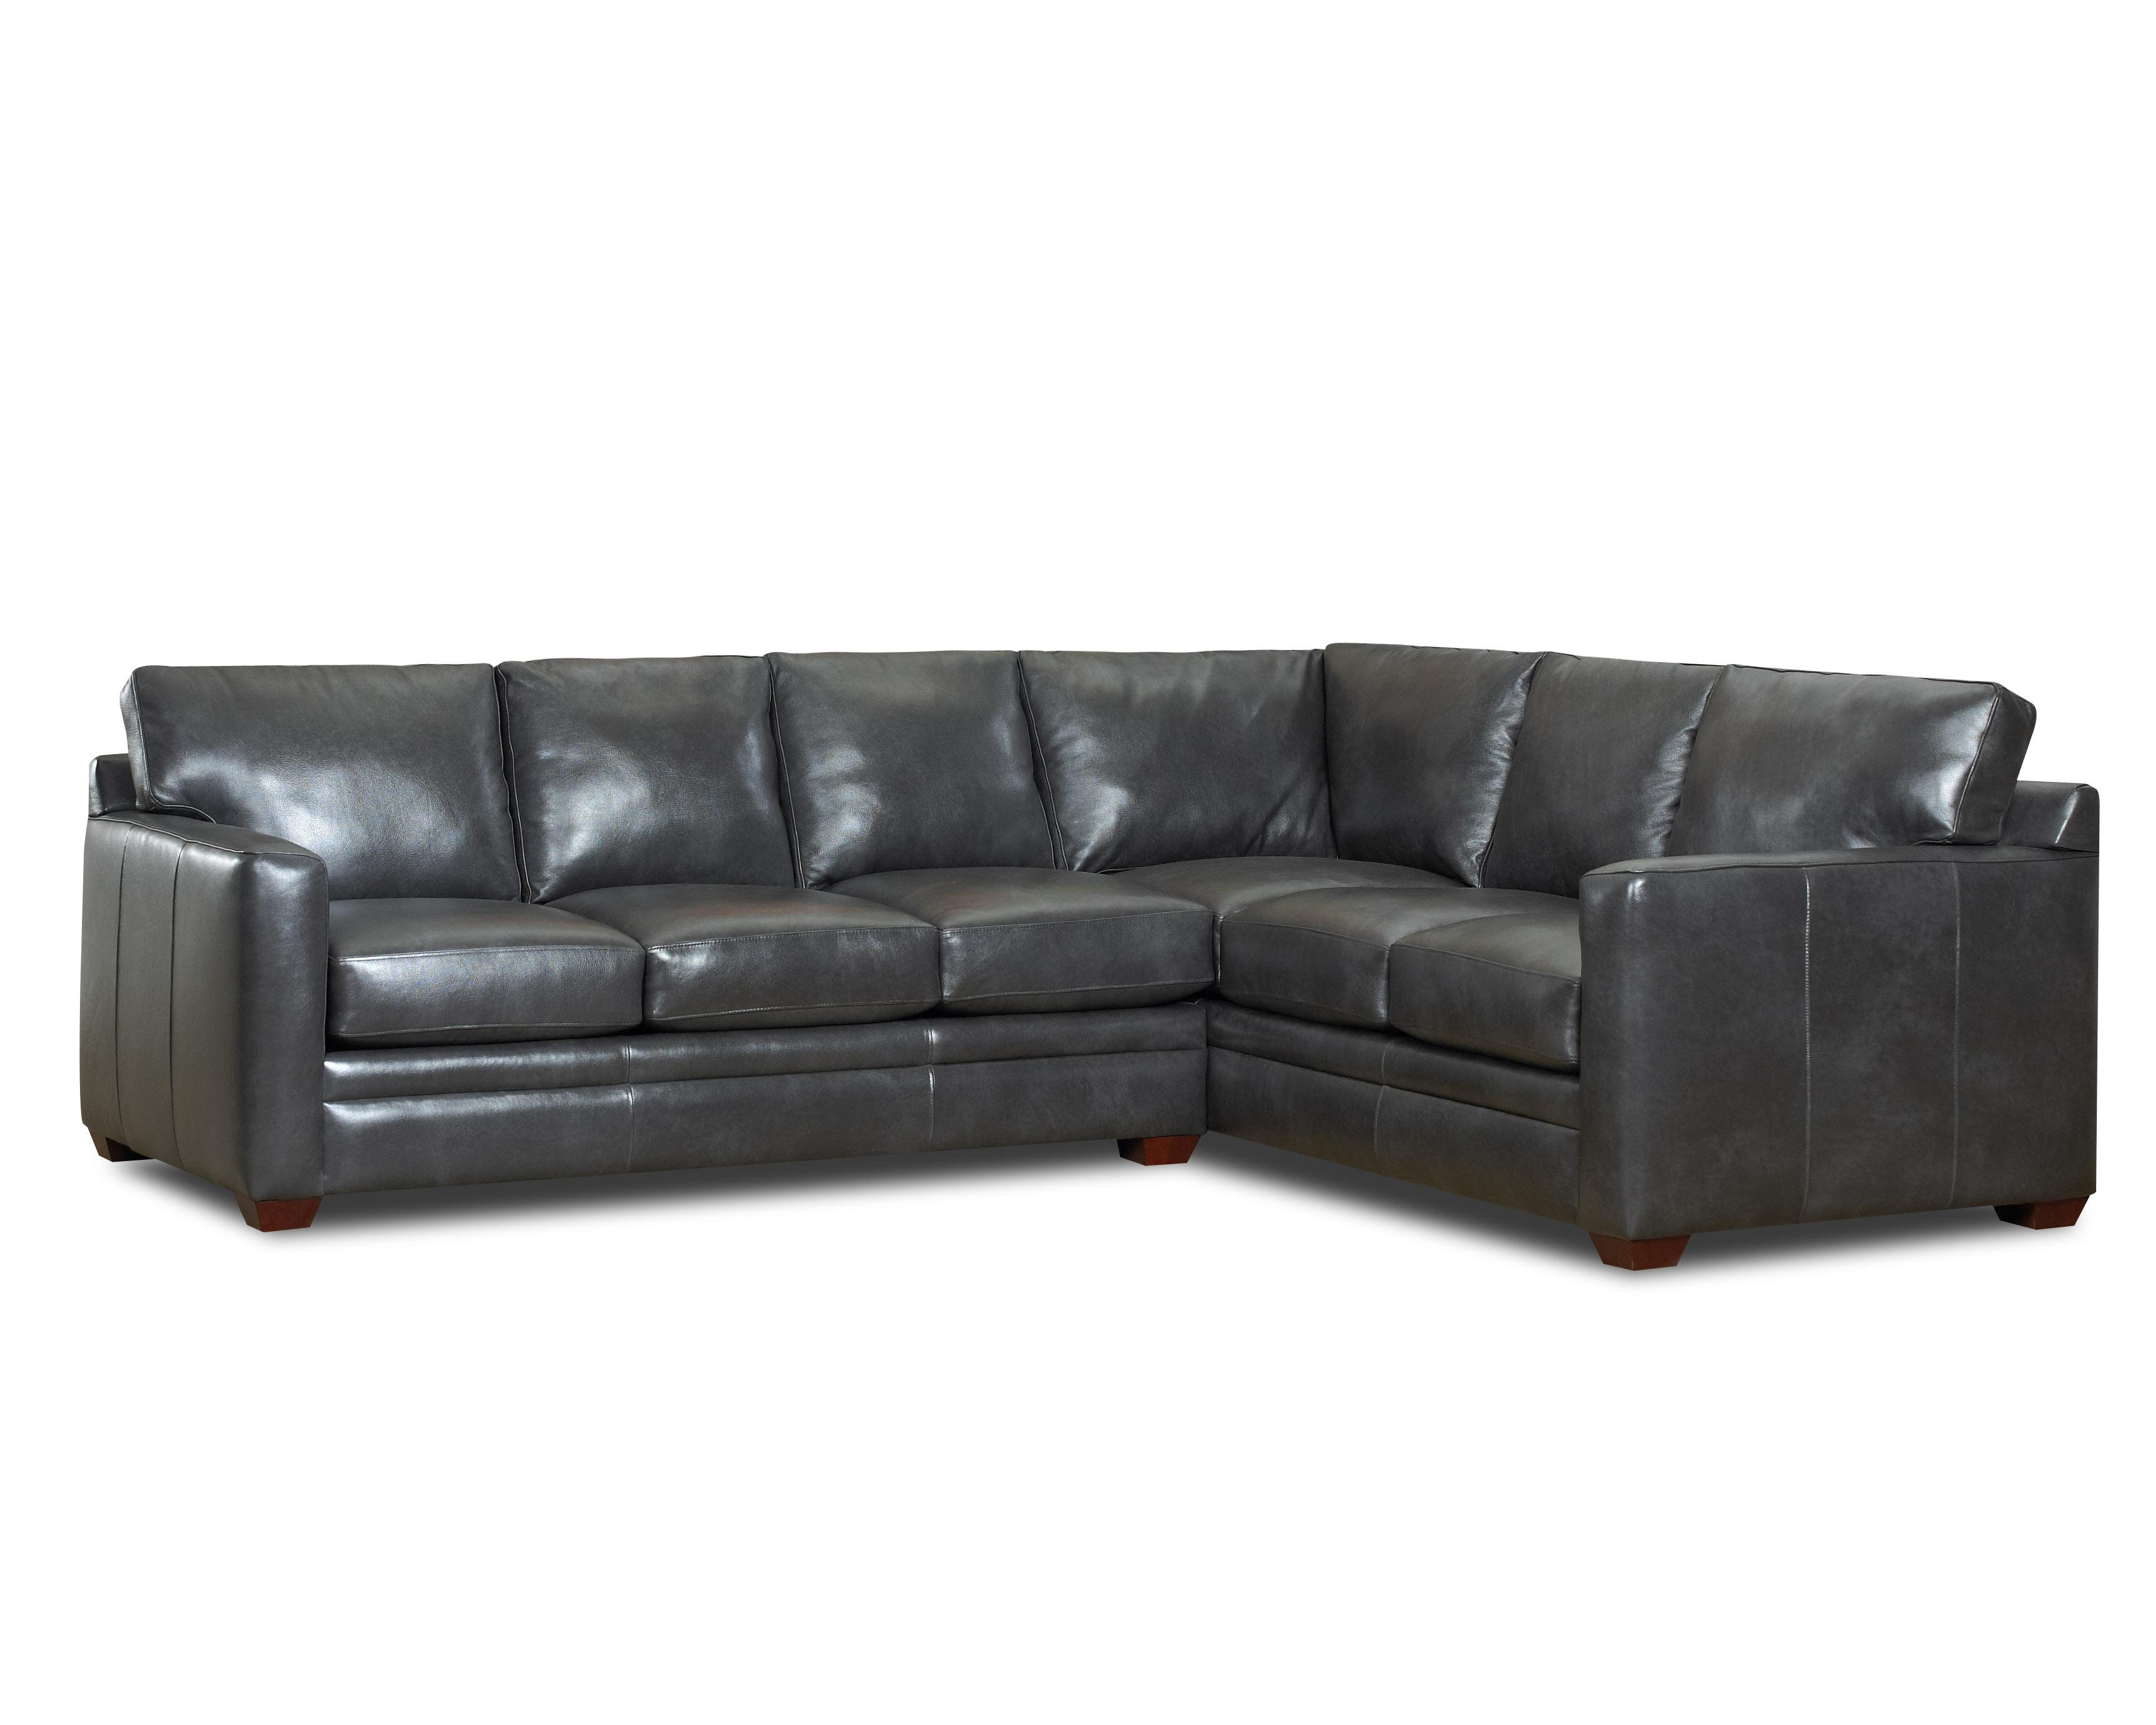 Most Recent Declan 3 Piece Power Reclining Sectionals With Right Facing Console Loveseat For Unique Klaussner Leather Sectional Sofa – Sofas (View 15 of 20)